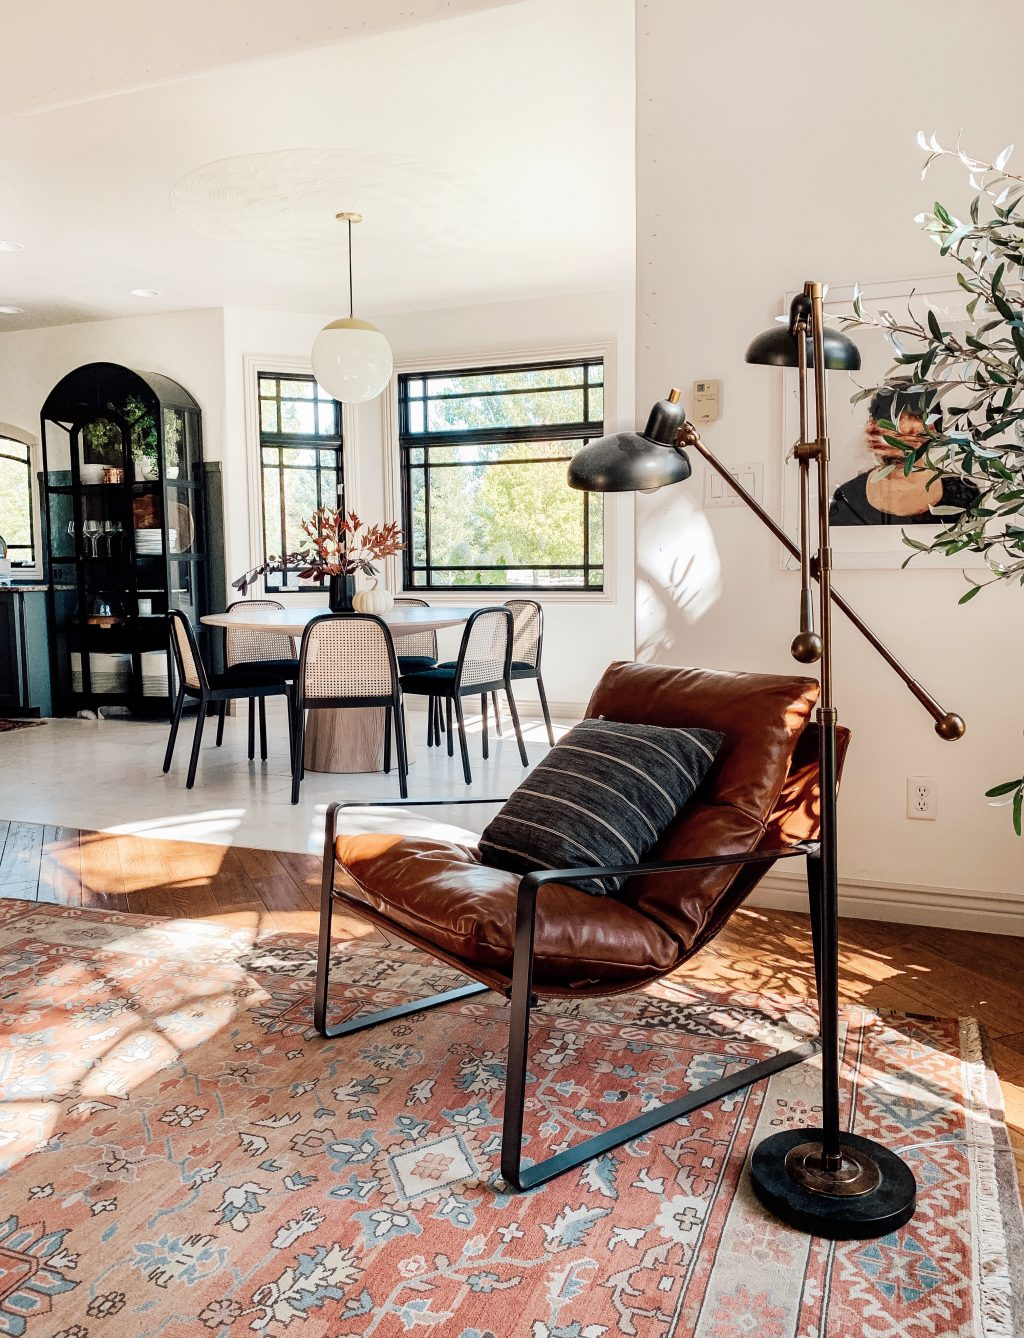 Our New Leather Chairs & 25 Fall Decor Favorites! - Chris ...